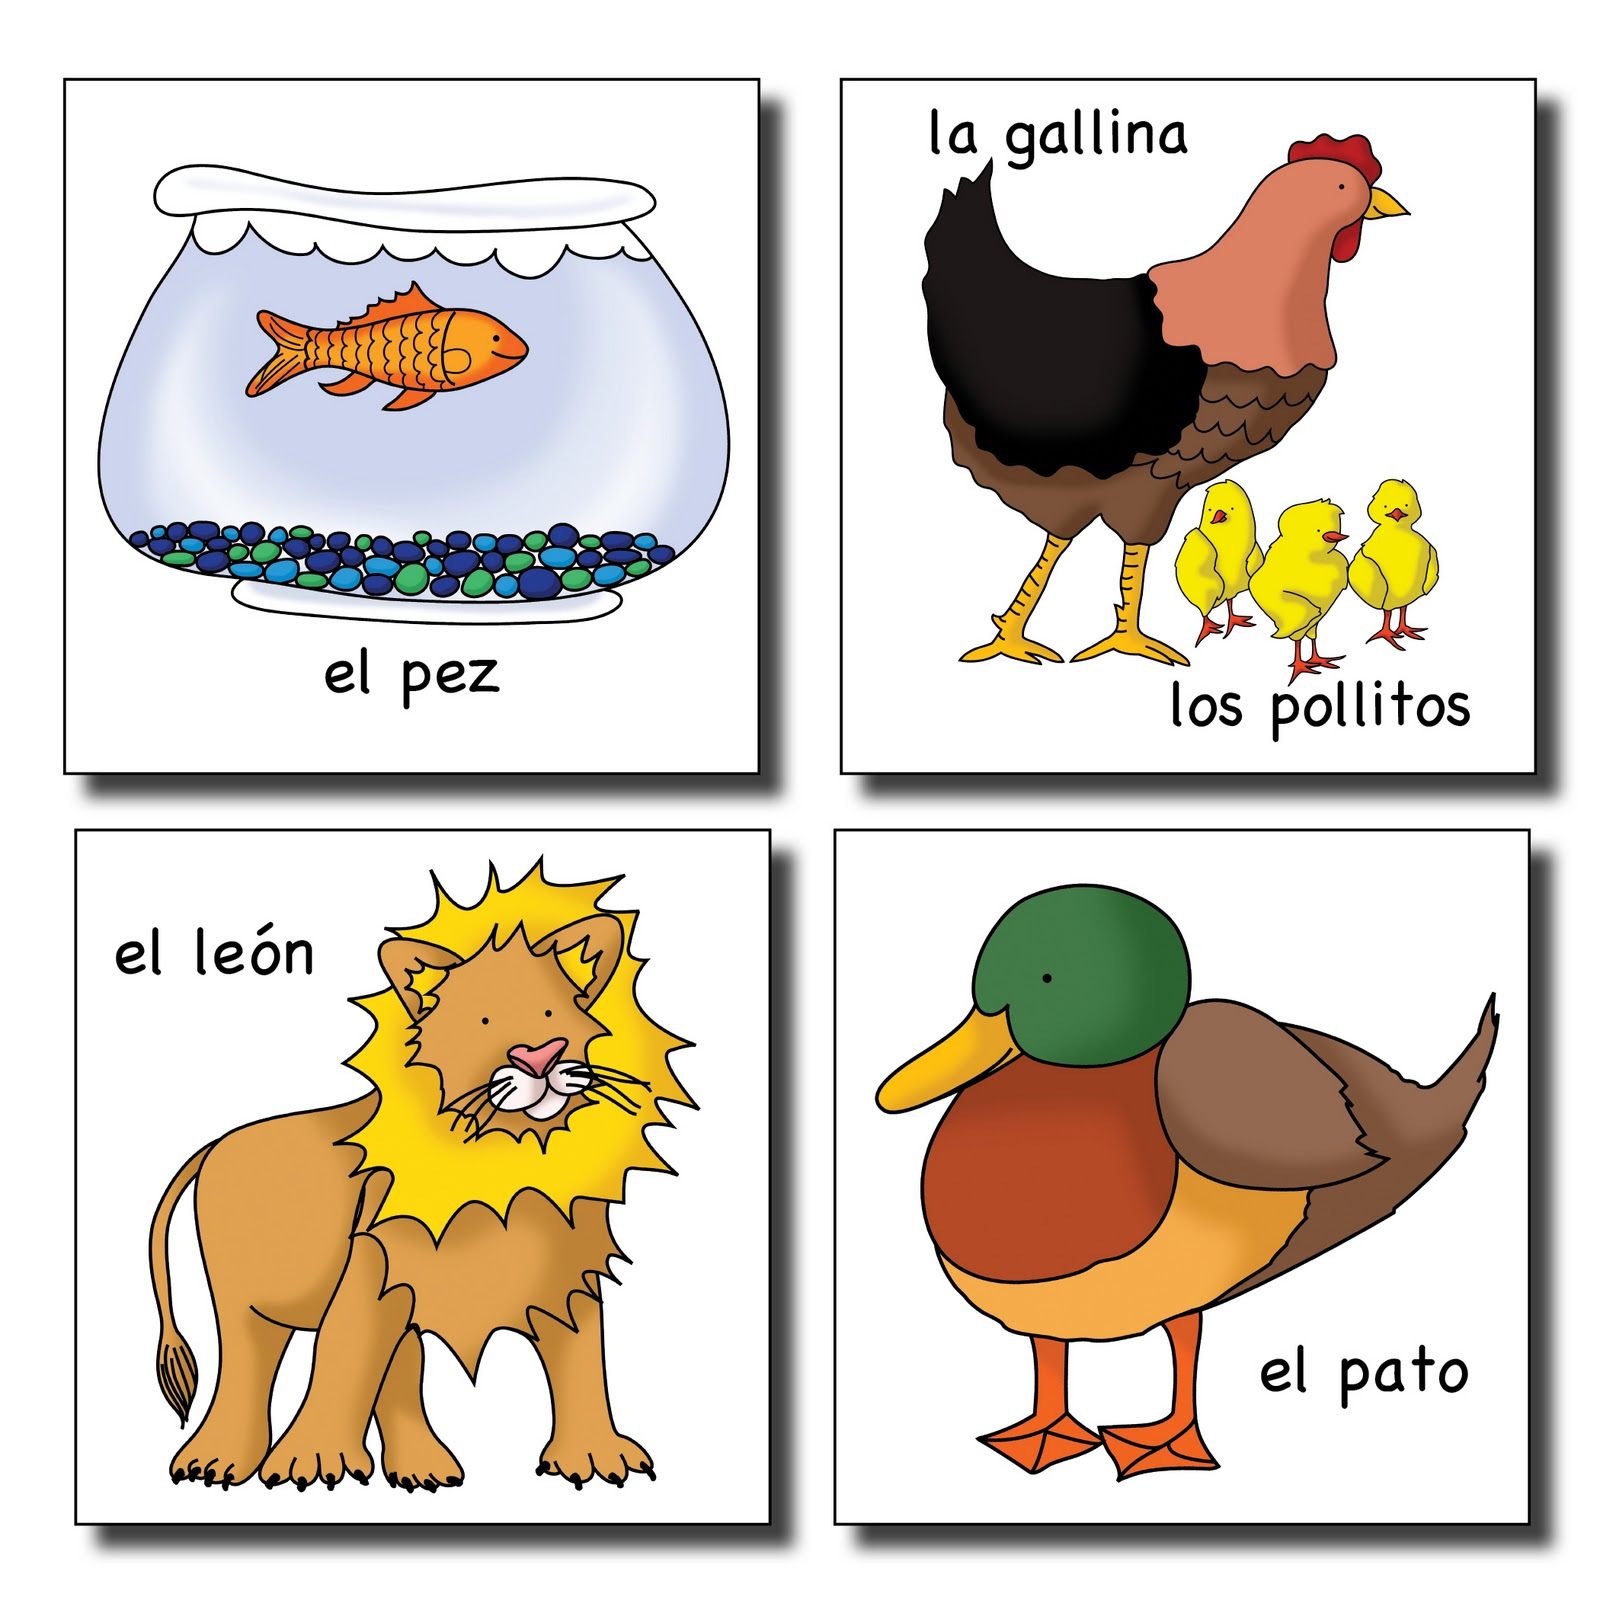 Calico Spanish Cual Animal Soy A Great Game With Spanish